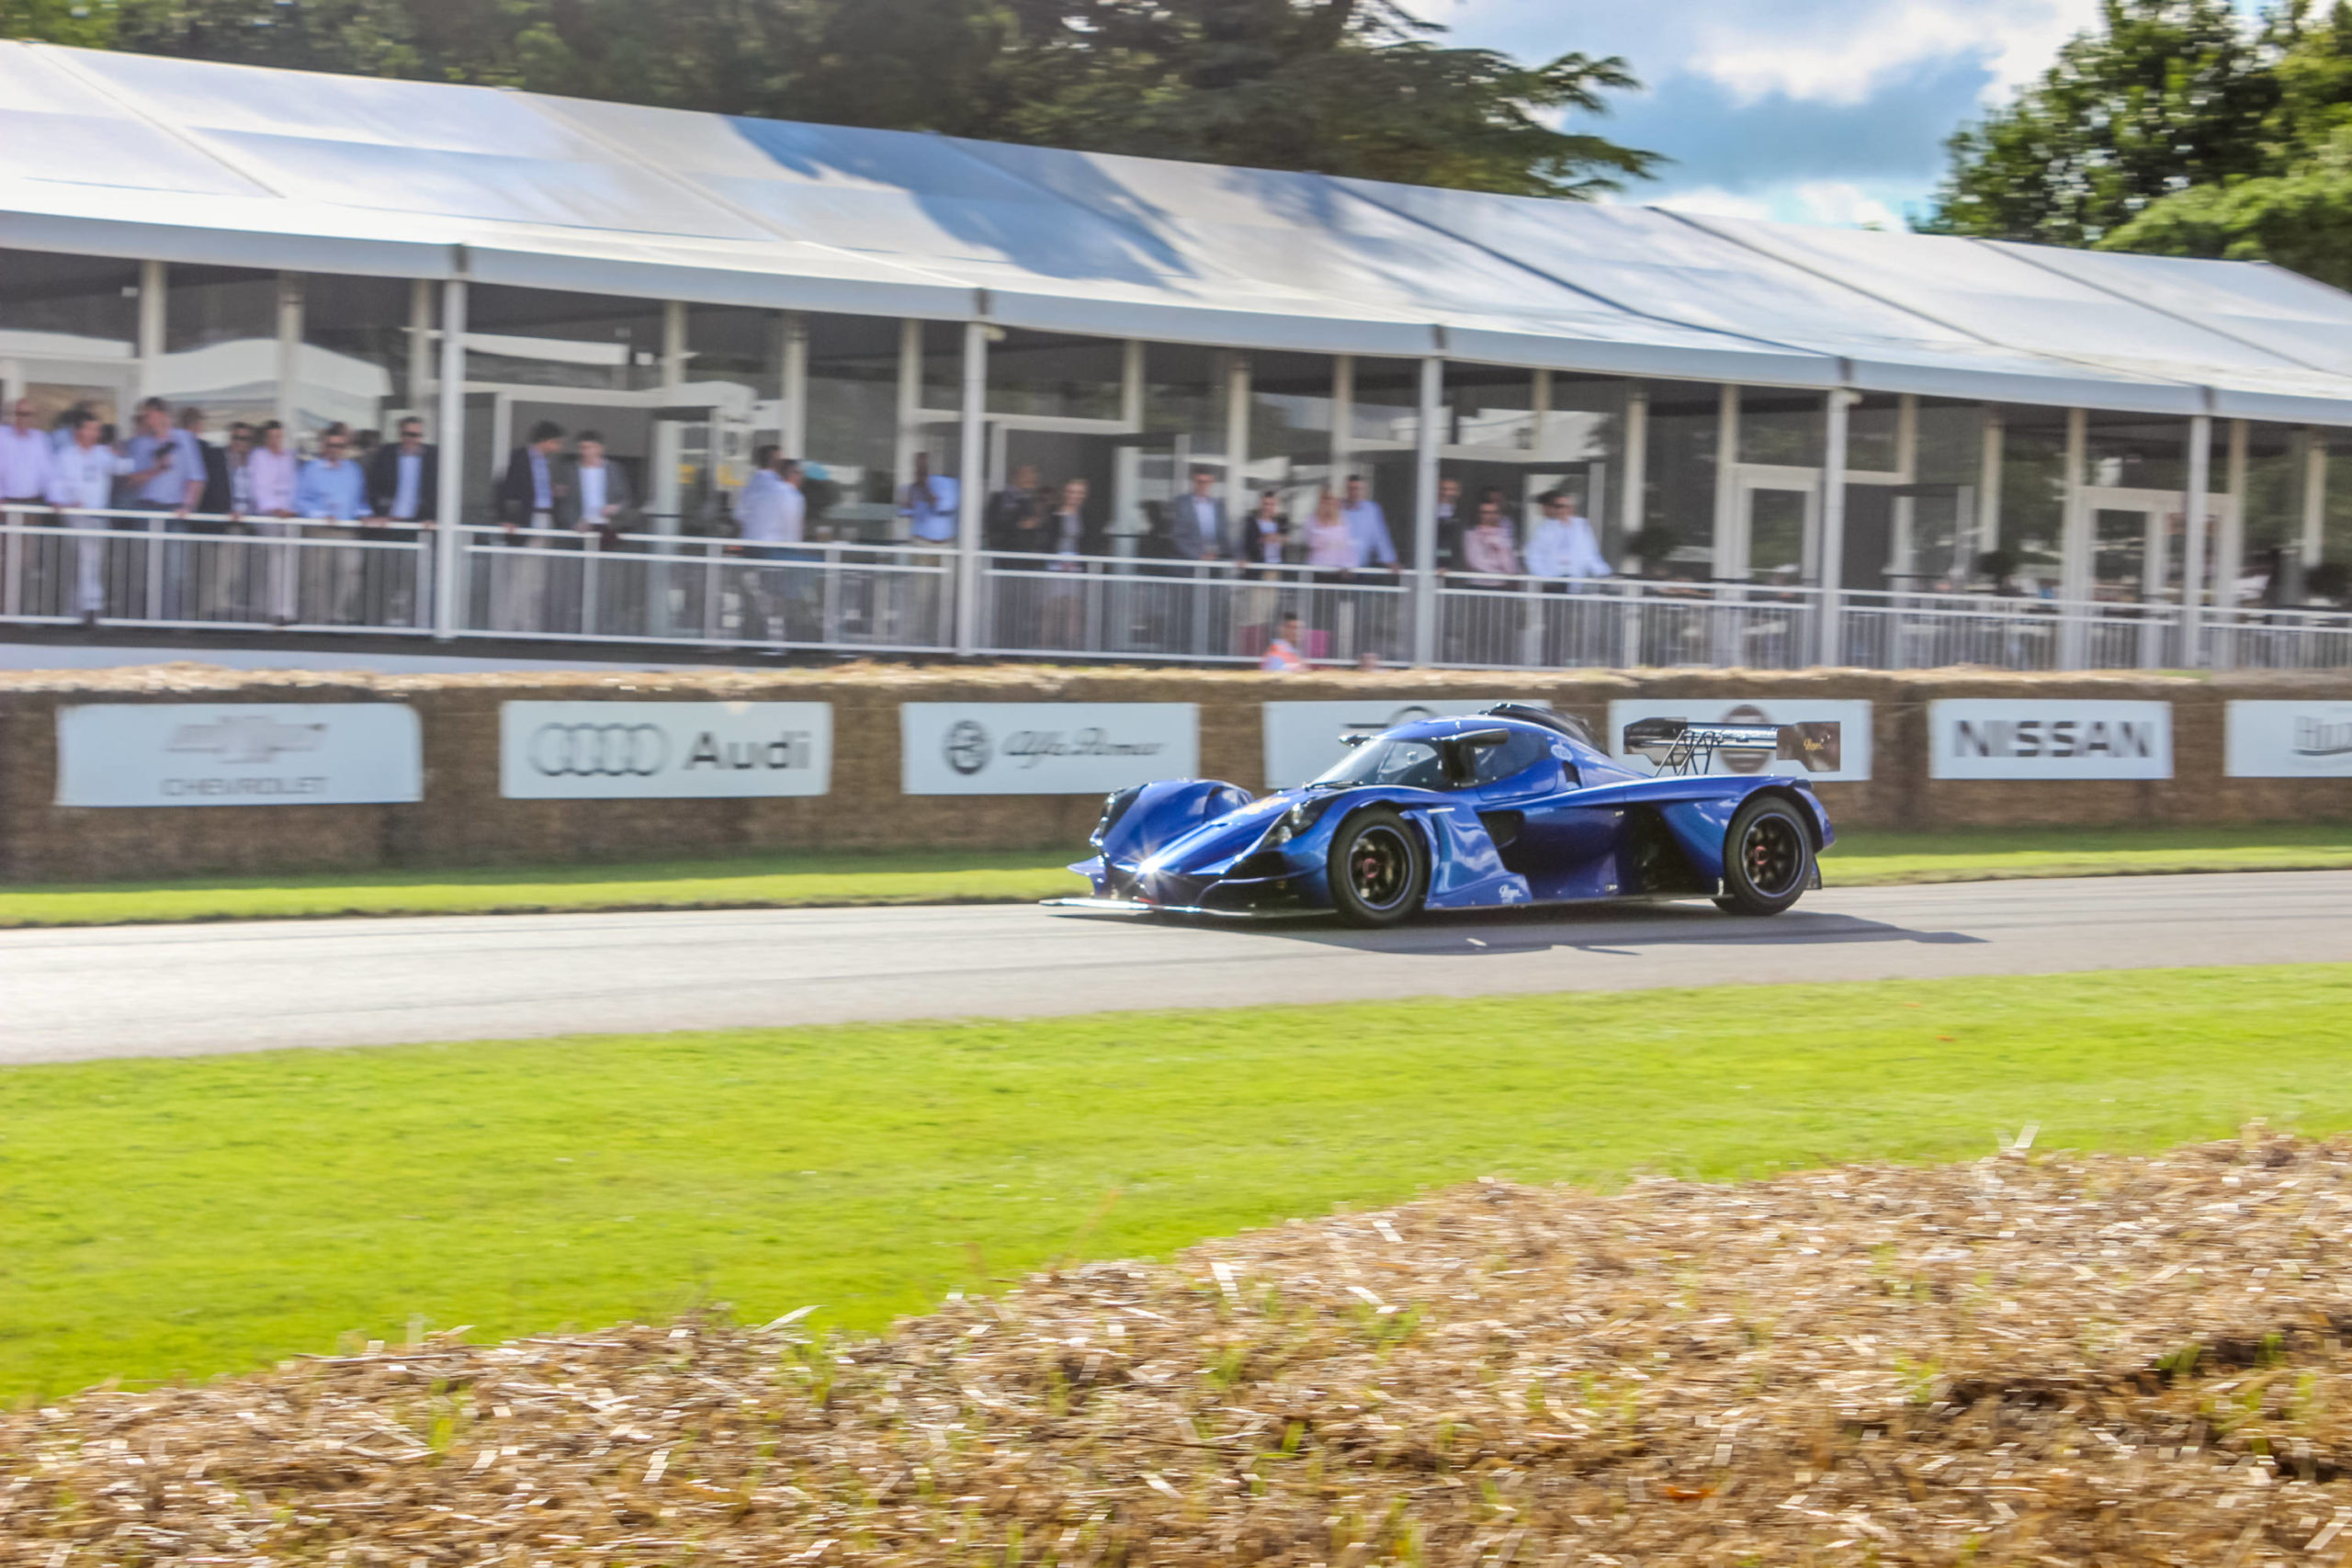 Going to Goodwood